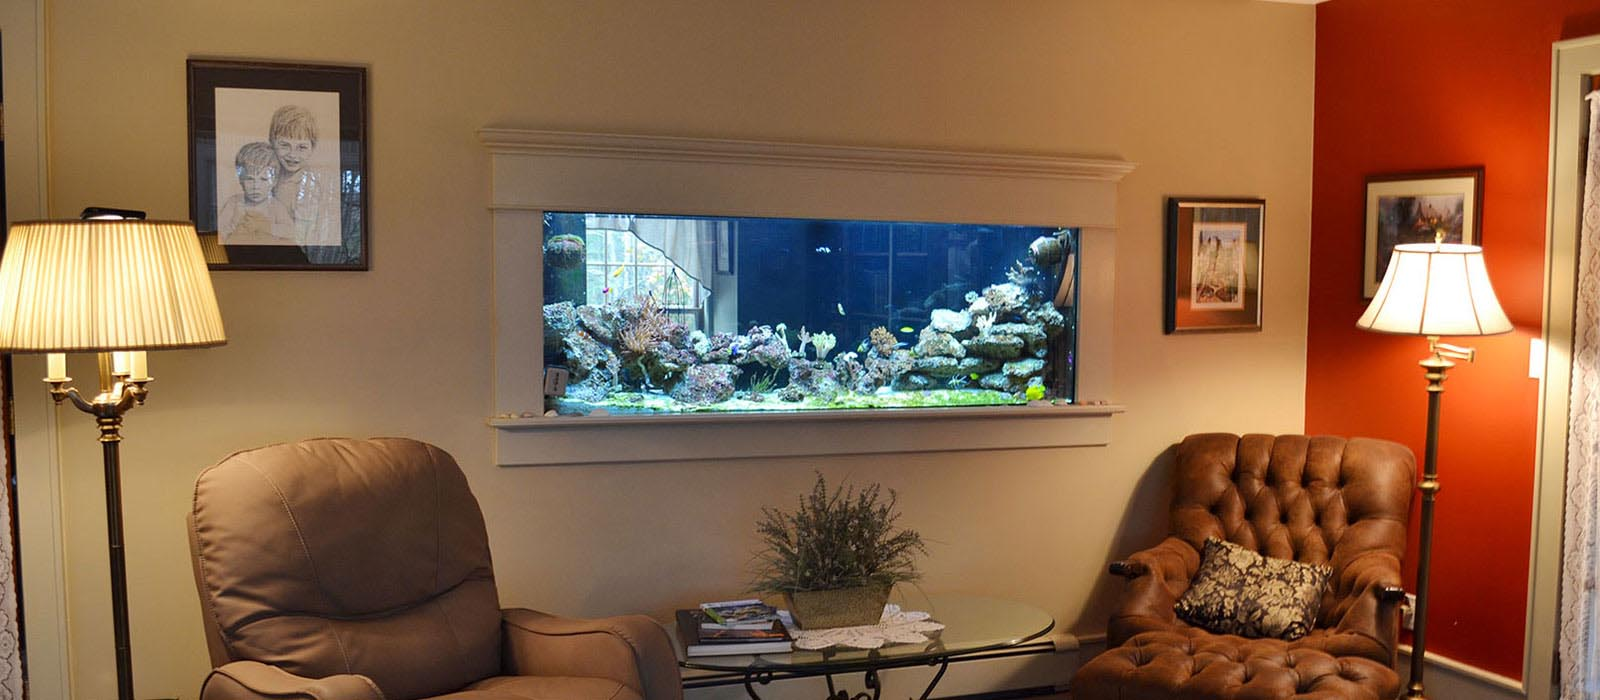 Aquarium Wall Mounted Fish Tank HF02 Design Ideas